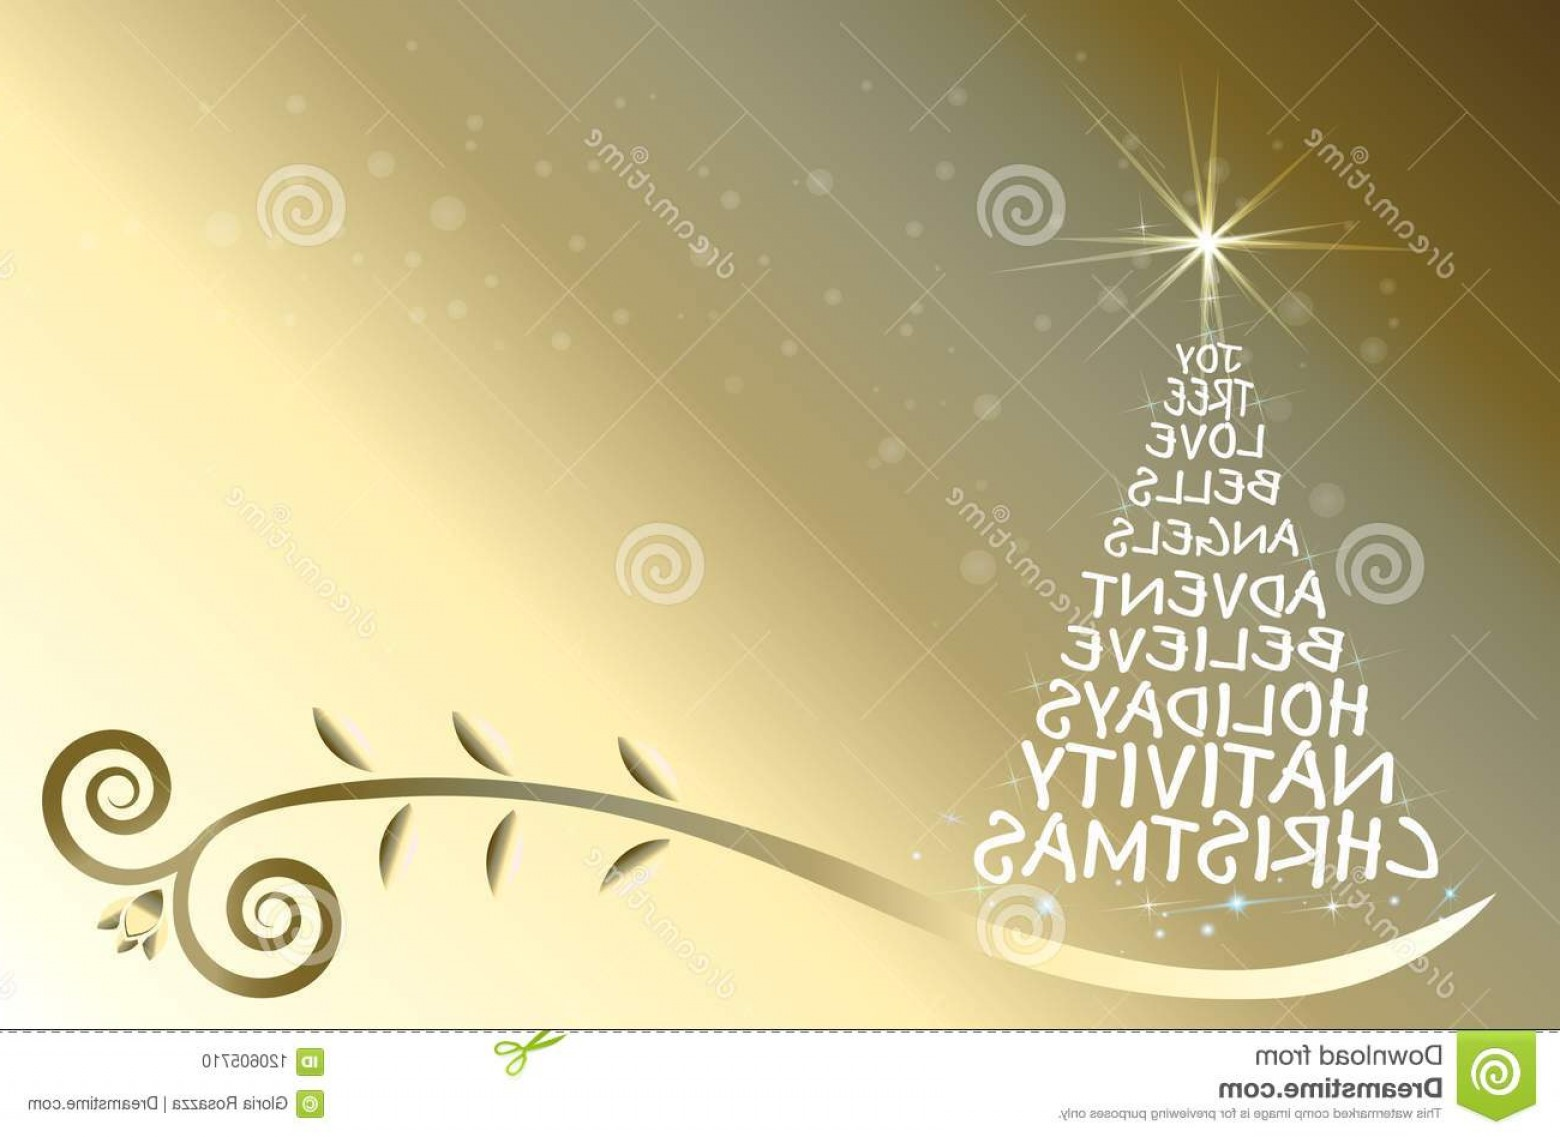 Swirly Christmas Tree Vector: Christmas Tree Gold Greetings Card Vector Words Shine Star Color Swirly Leaf Bubbles Image Image